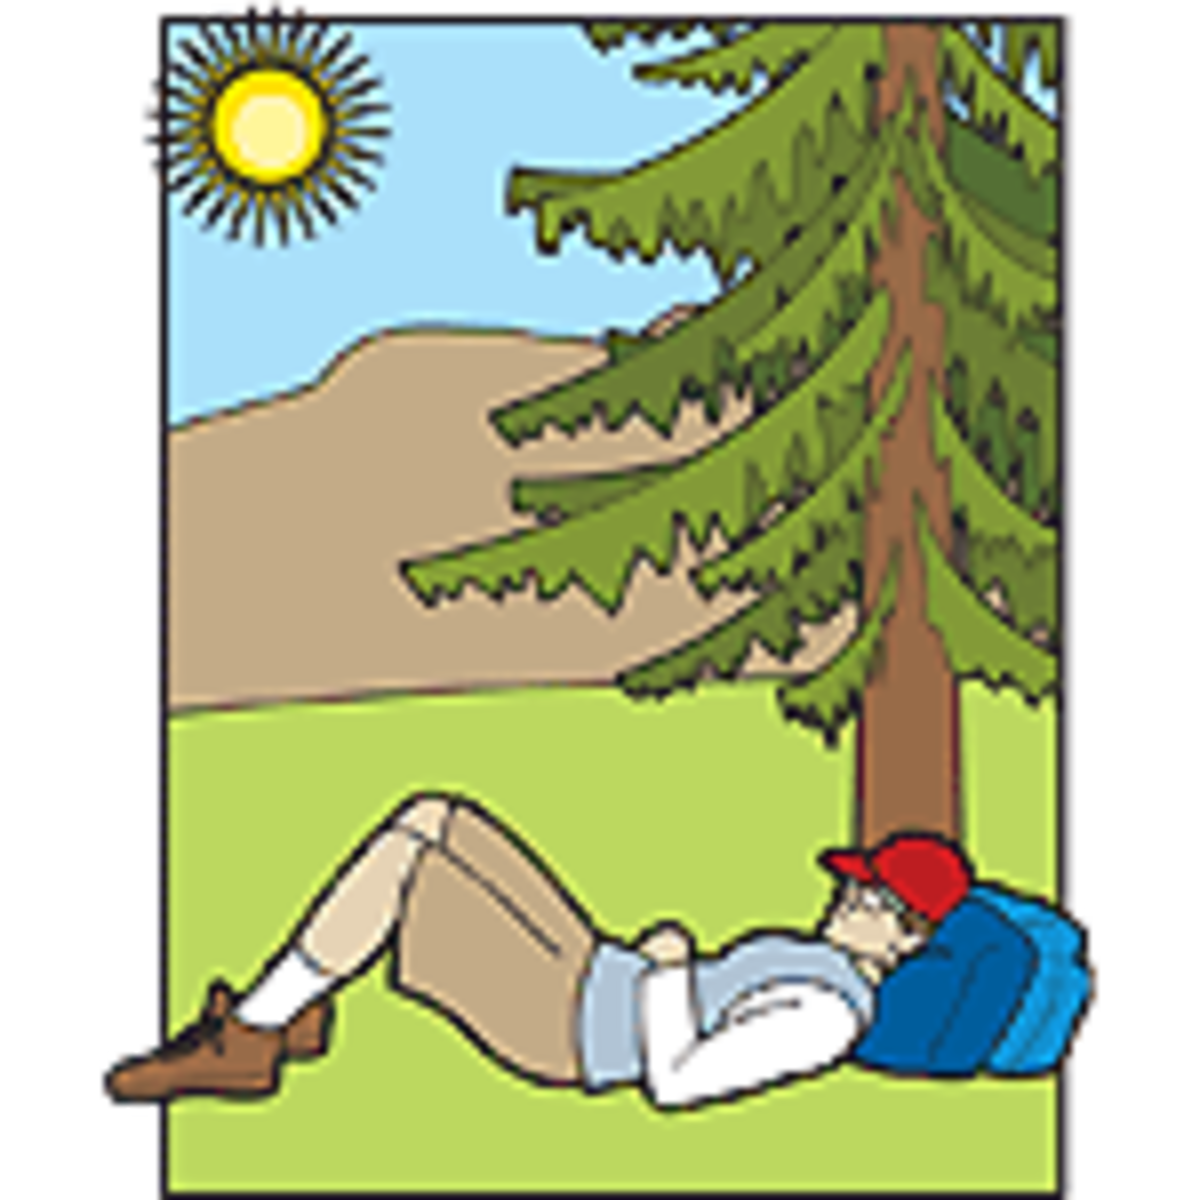 image transparent Hike clipart. Hiking night free on